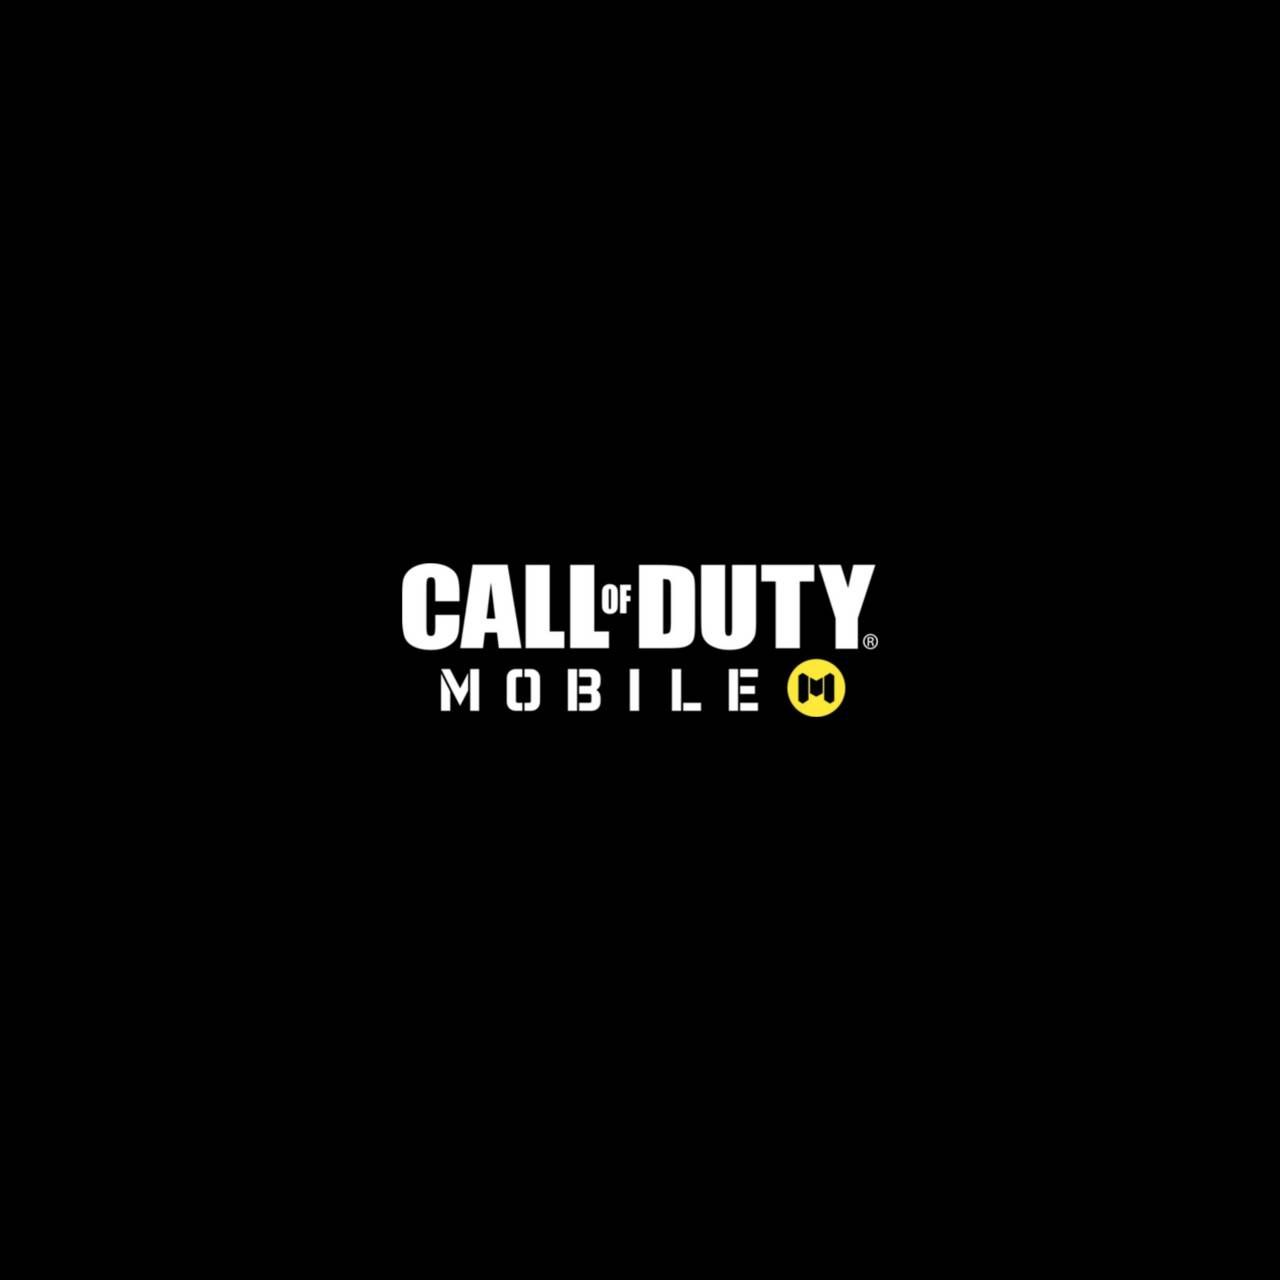 call of duty mobile logo white